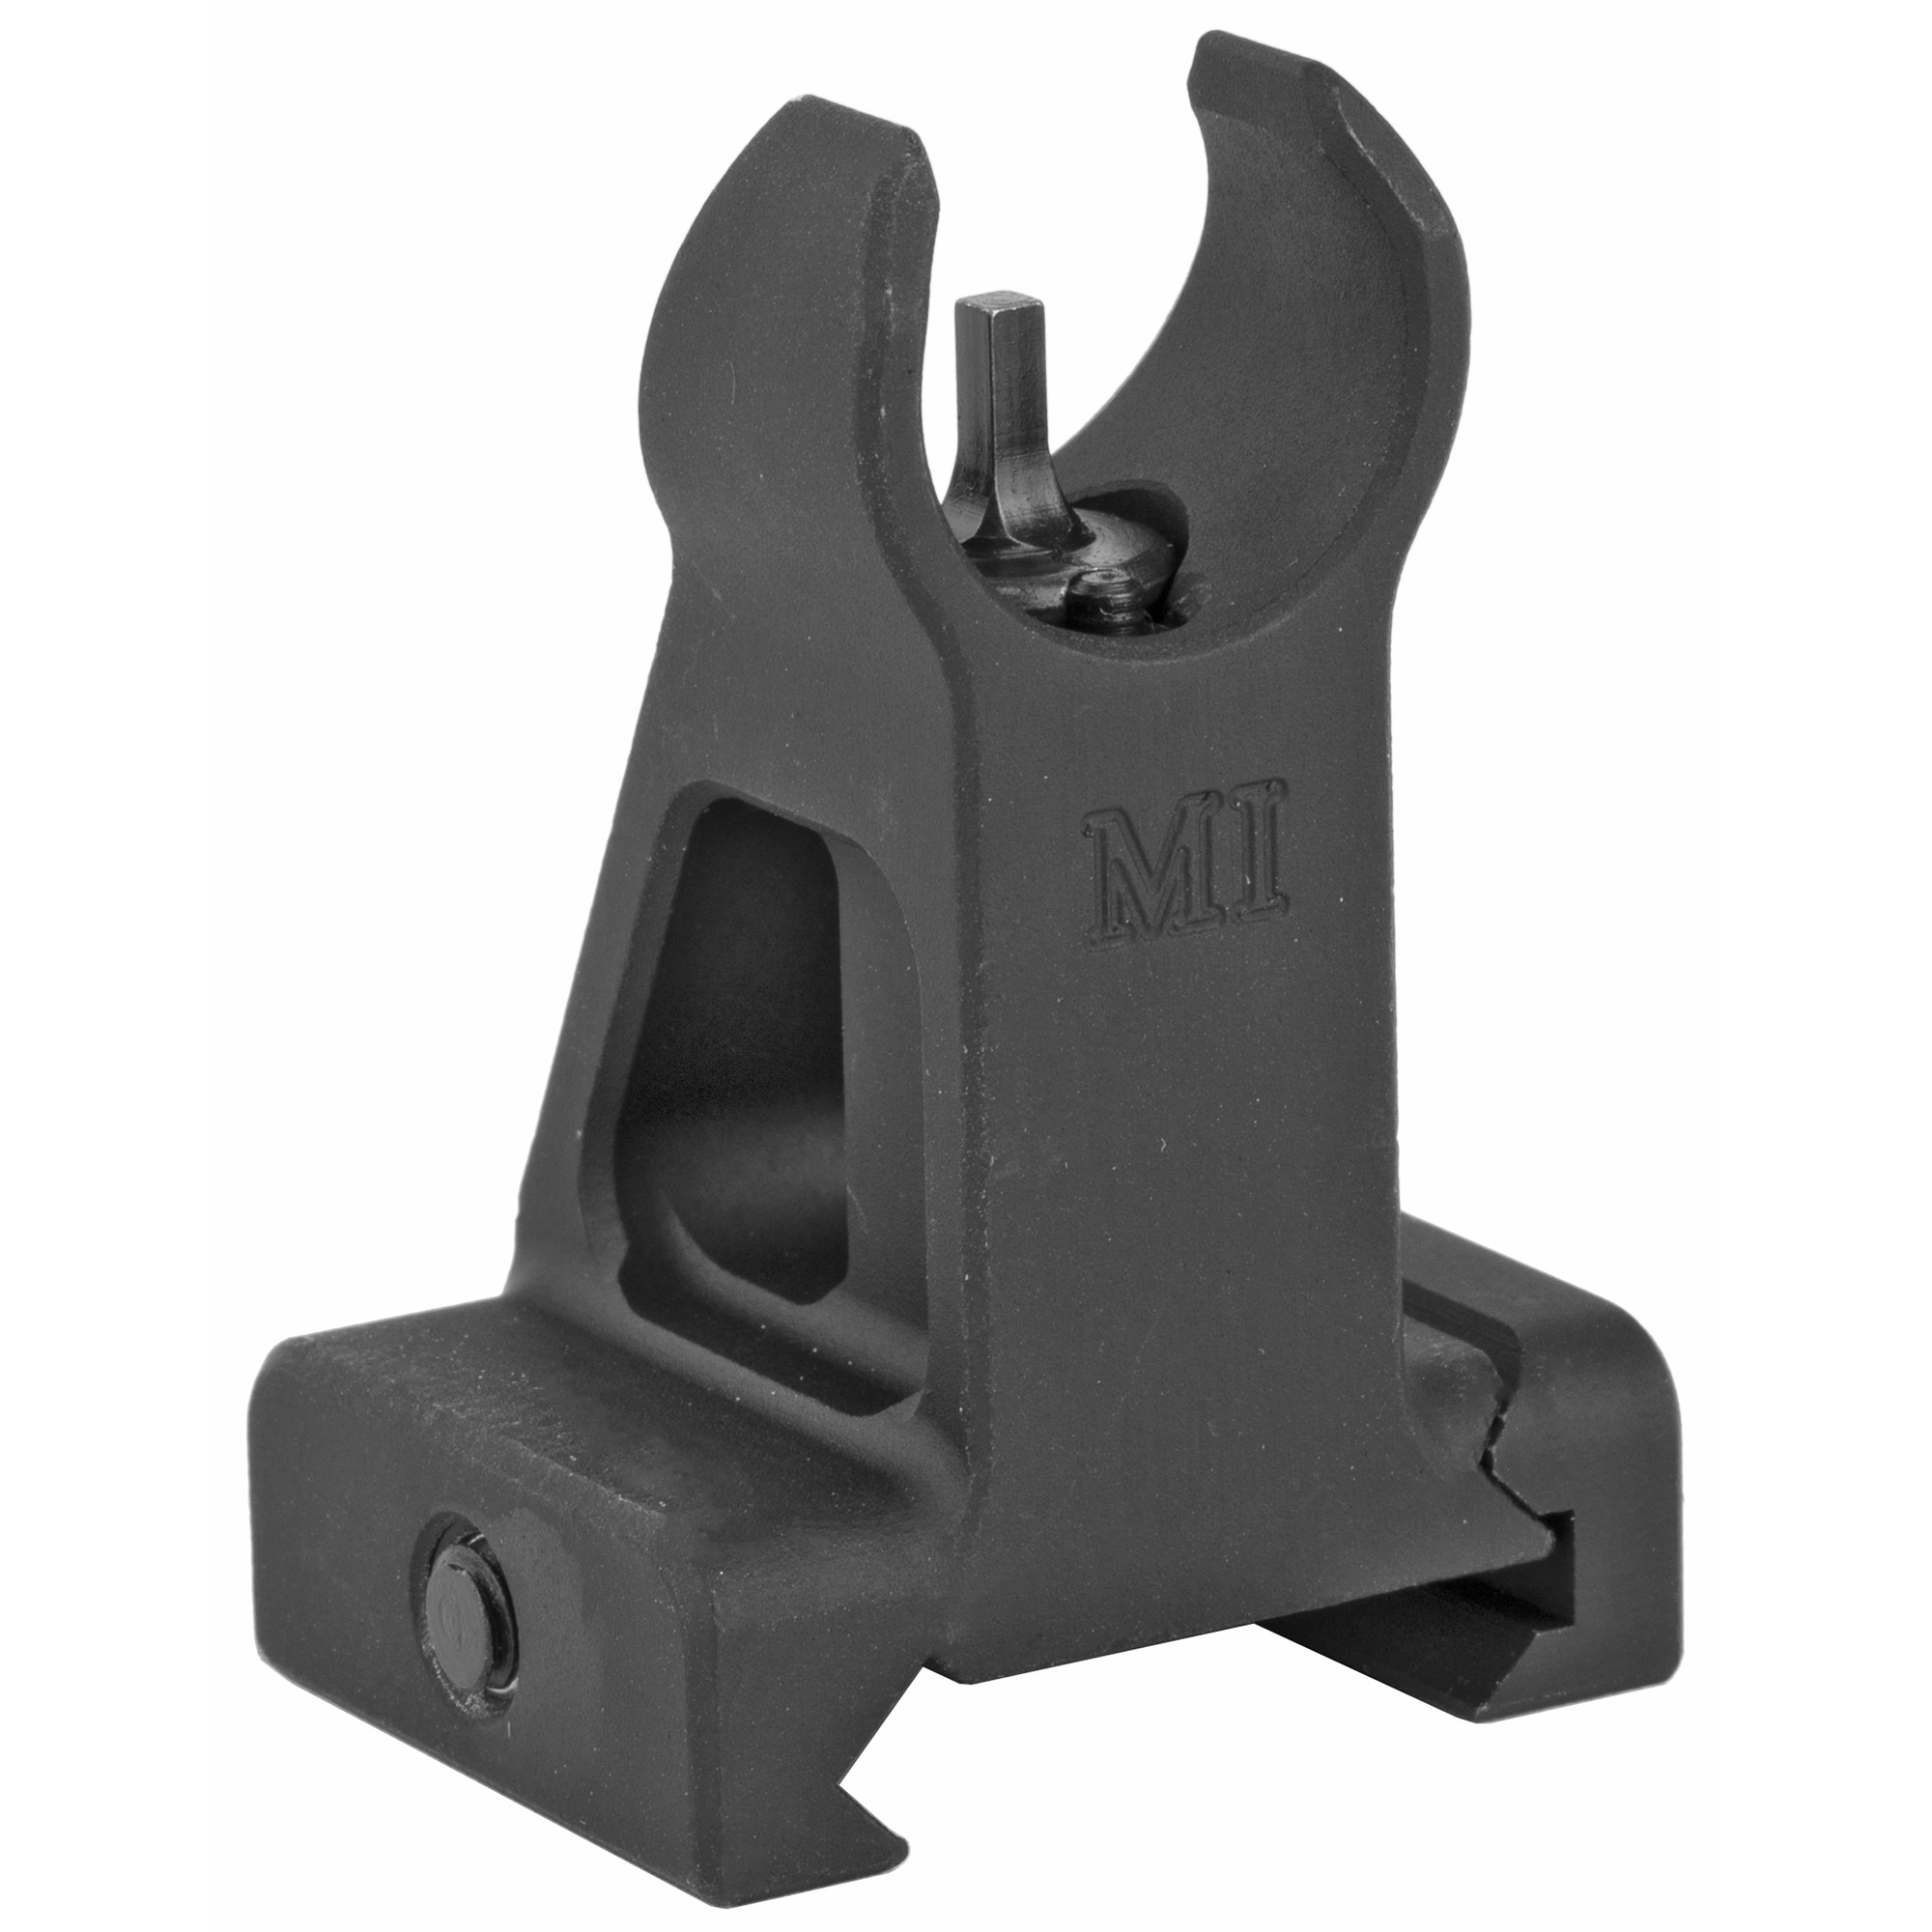 "If you prefer battle proven design or want a set of top quality back up irons"" then the Midwest Industries HK Style Combat Fixed Front Sight fits the bill. Made of durable"" yet lightweight aircraft grade aluminum"" the sight is secured to any Picatinny"" weaver top mounted rail along any sized handguard."